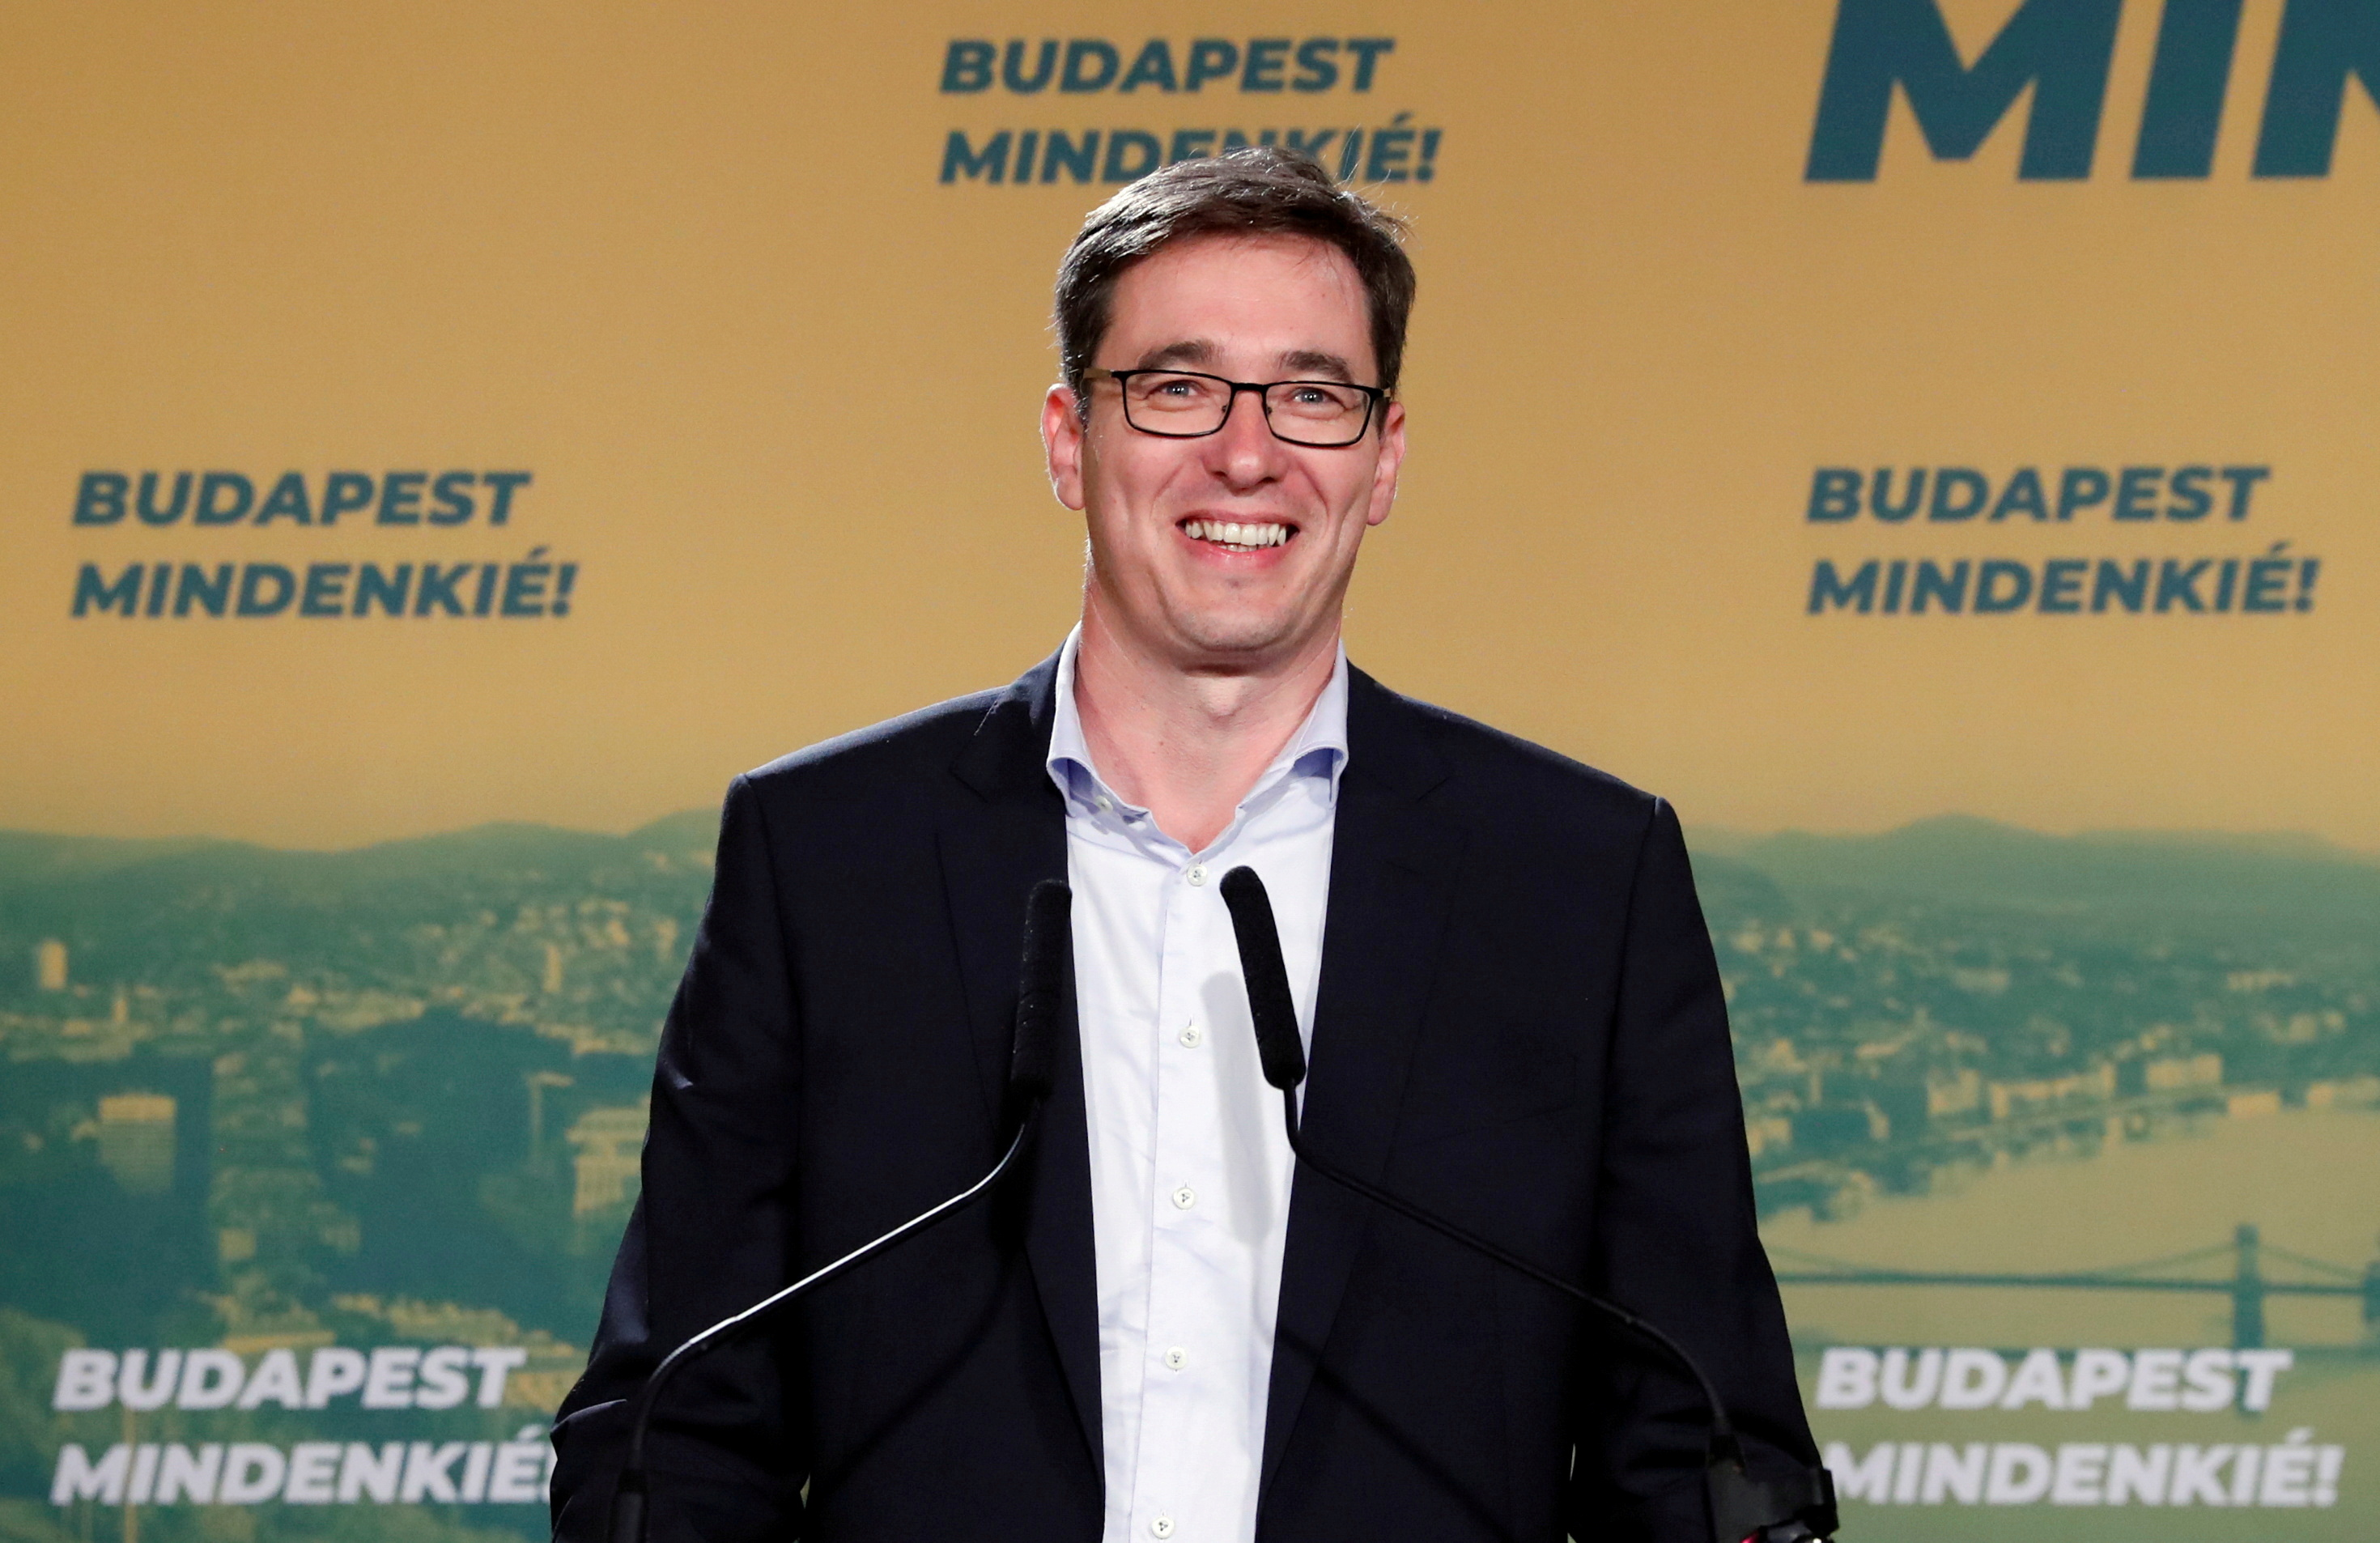 Gergely Karacsony, opposition parties' candidate, delivers a statement after being elected Mayor of Budapest, in Budapest, Hungary, October 13, 2019. REUTERS/Bernadett Szabo/File Photo